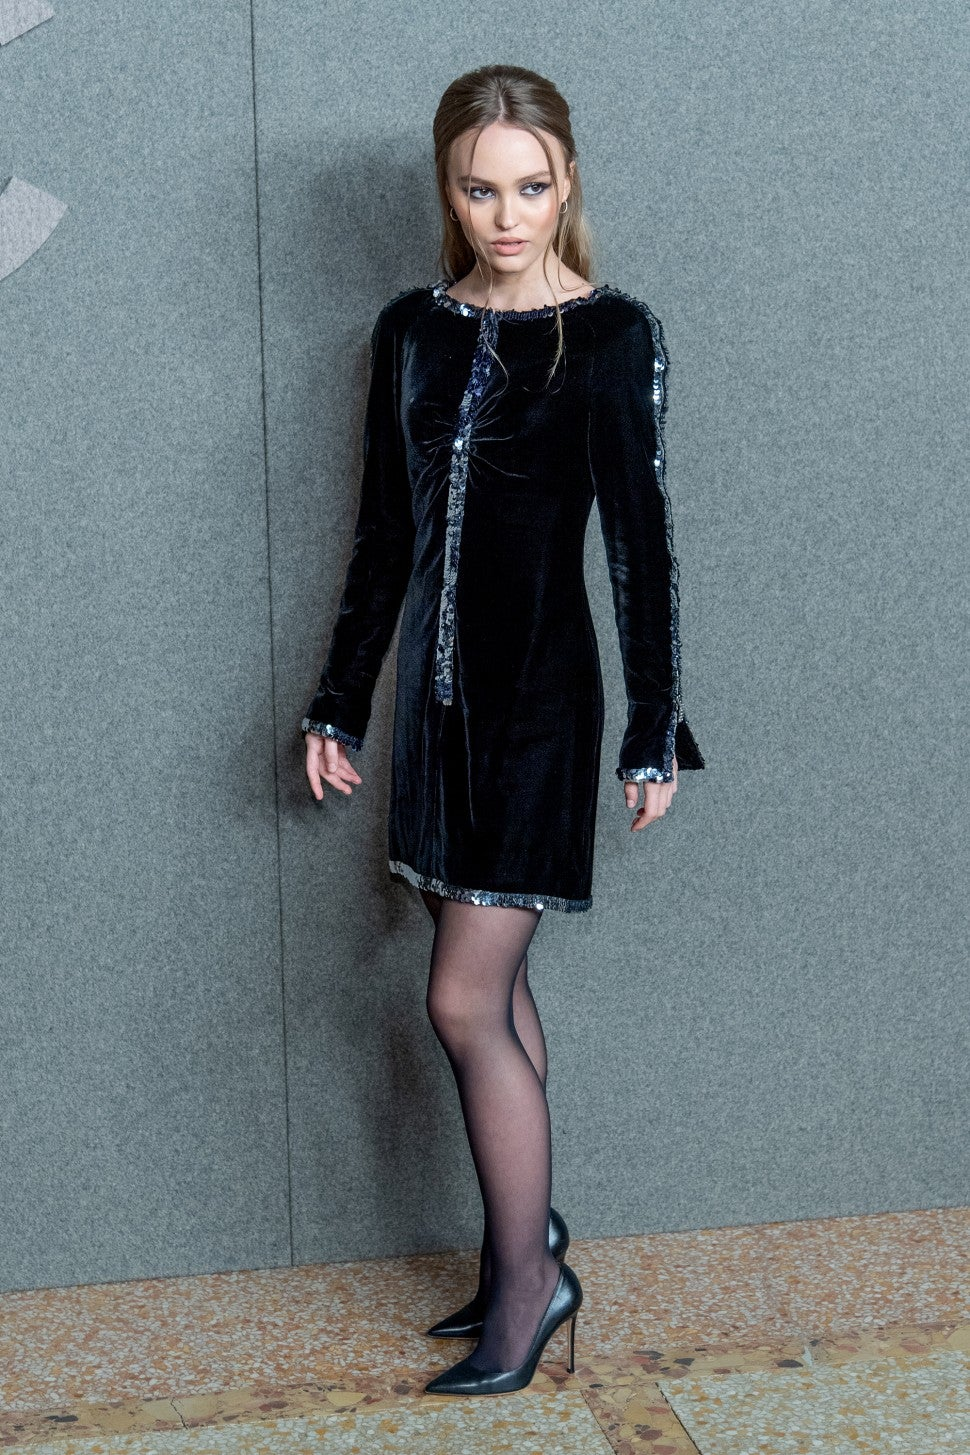 Lily-Rose Depp at Chanel pre-fall show